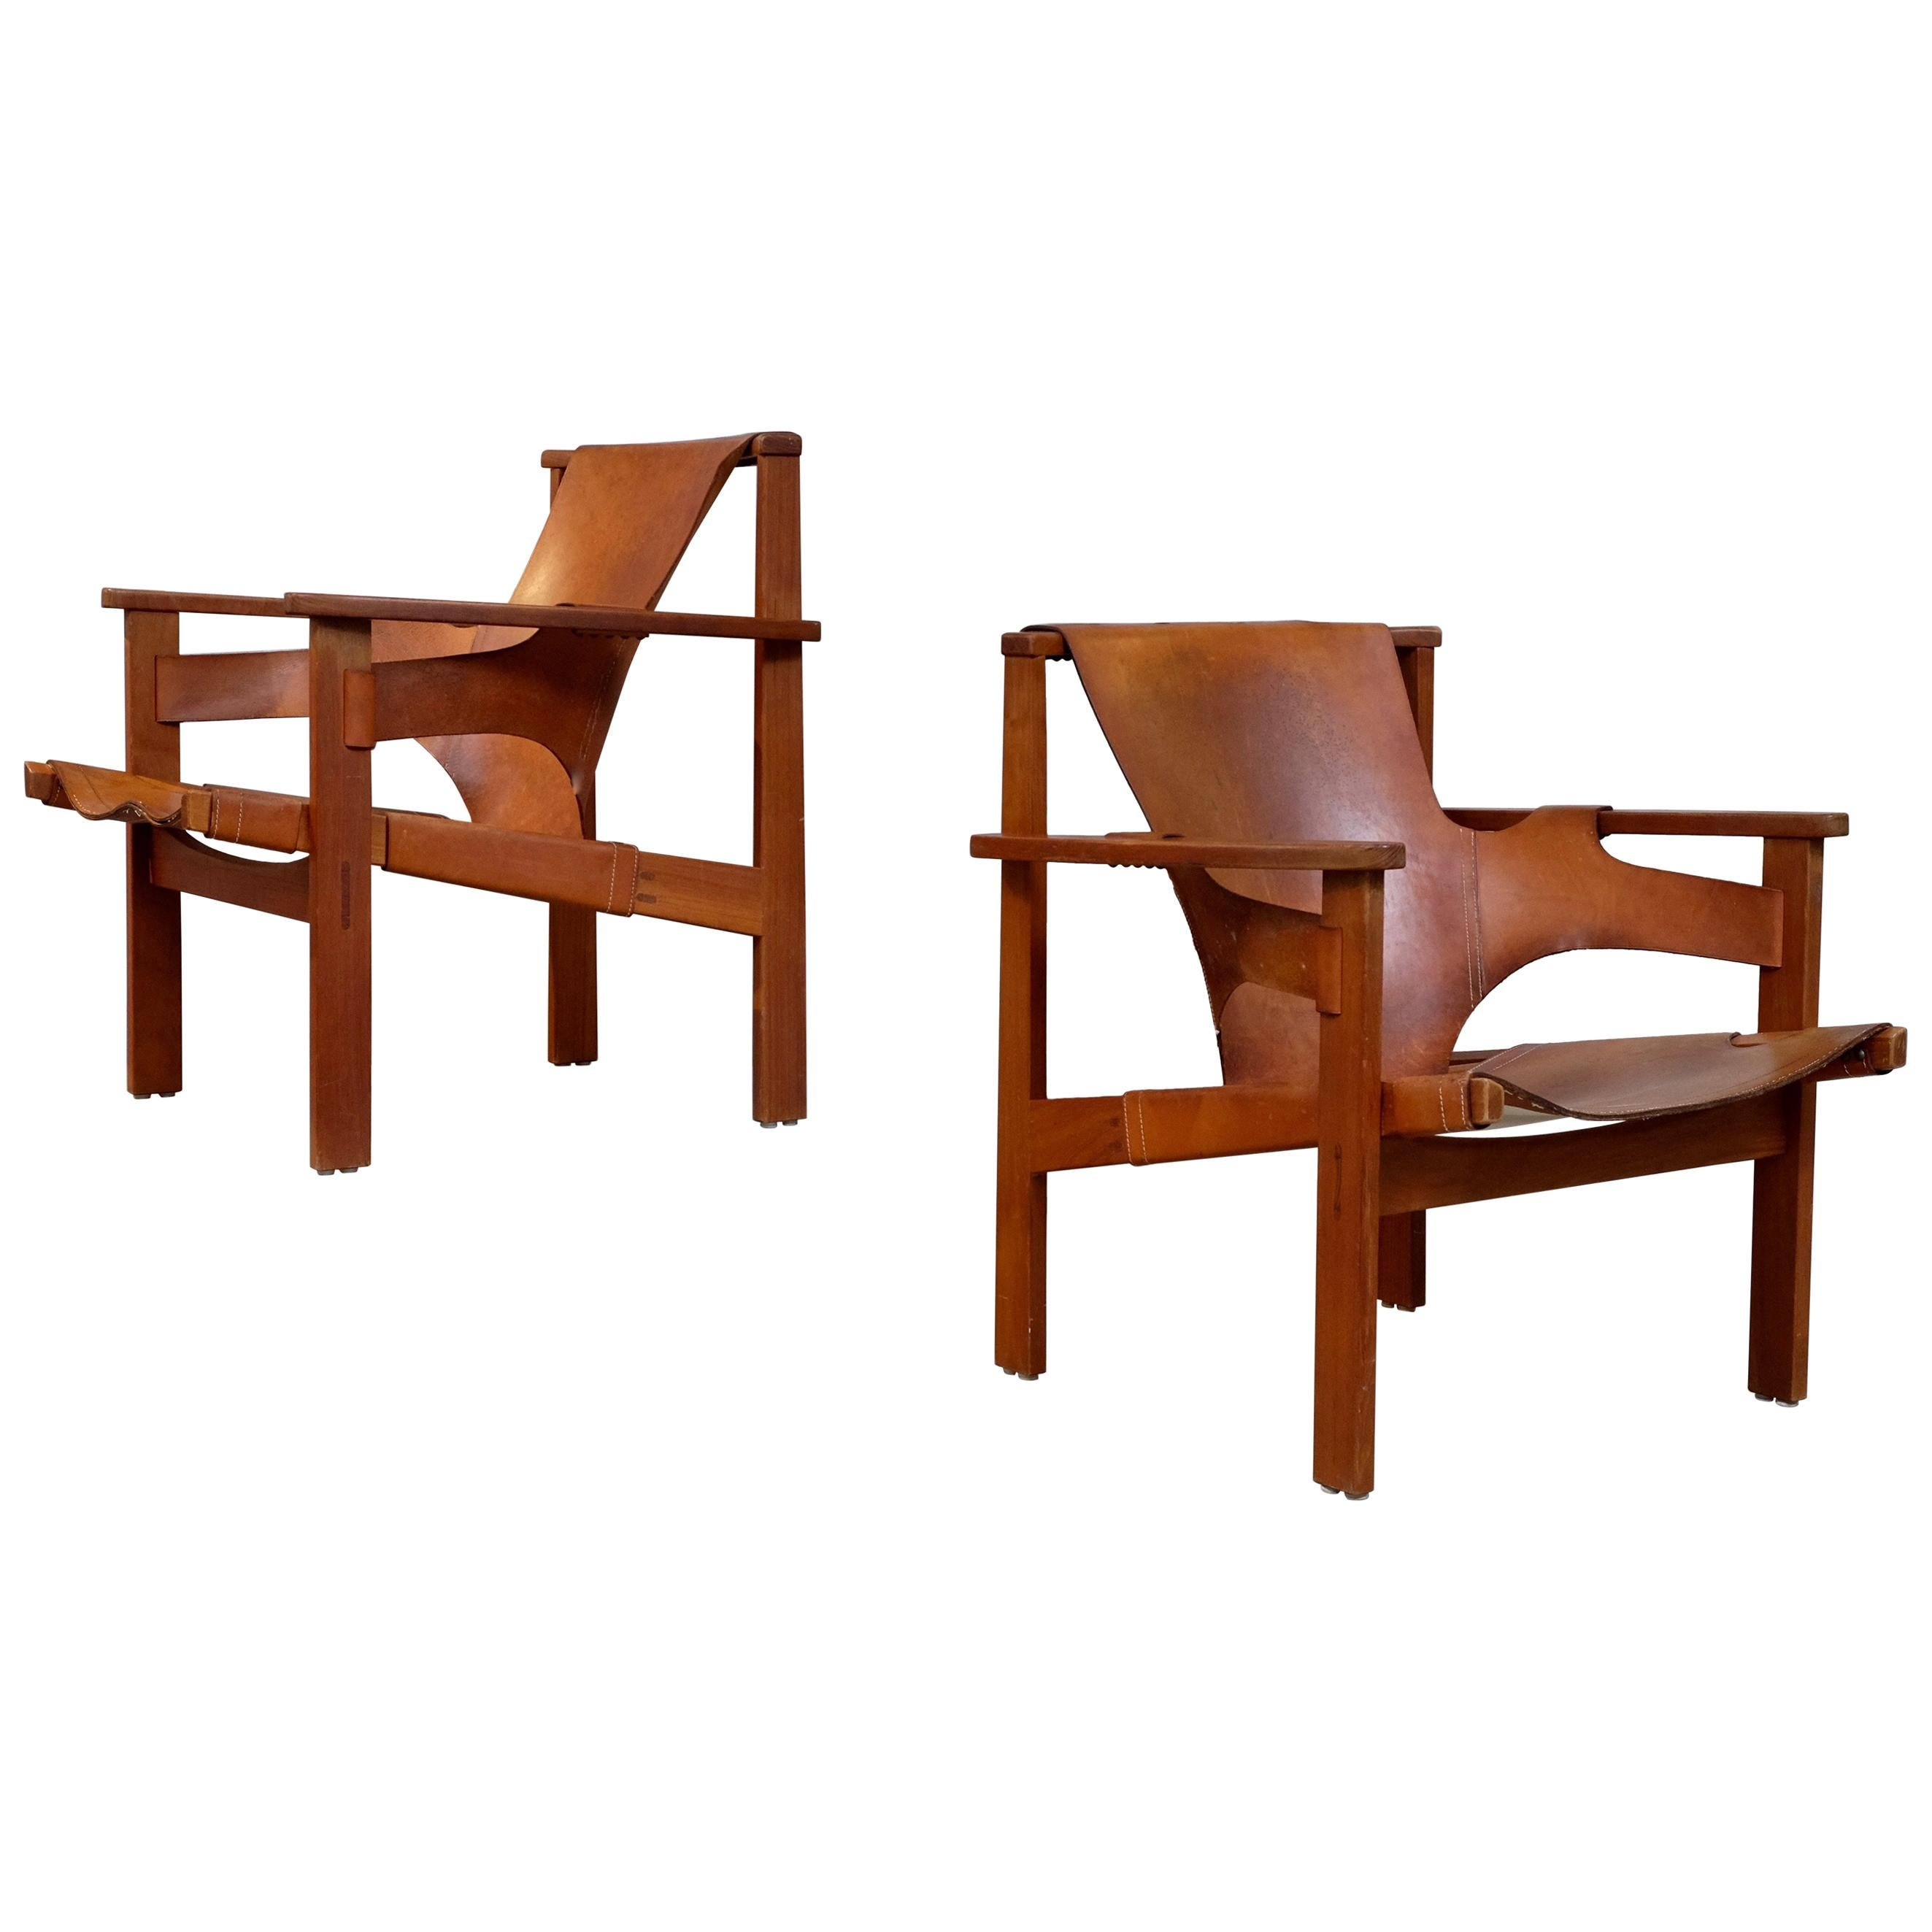 """Pair of """"Trienna"""" Easy Chairs by Carl-Axel Acking, 1950s"""